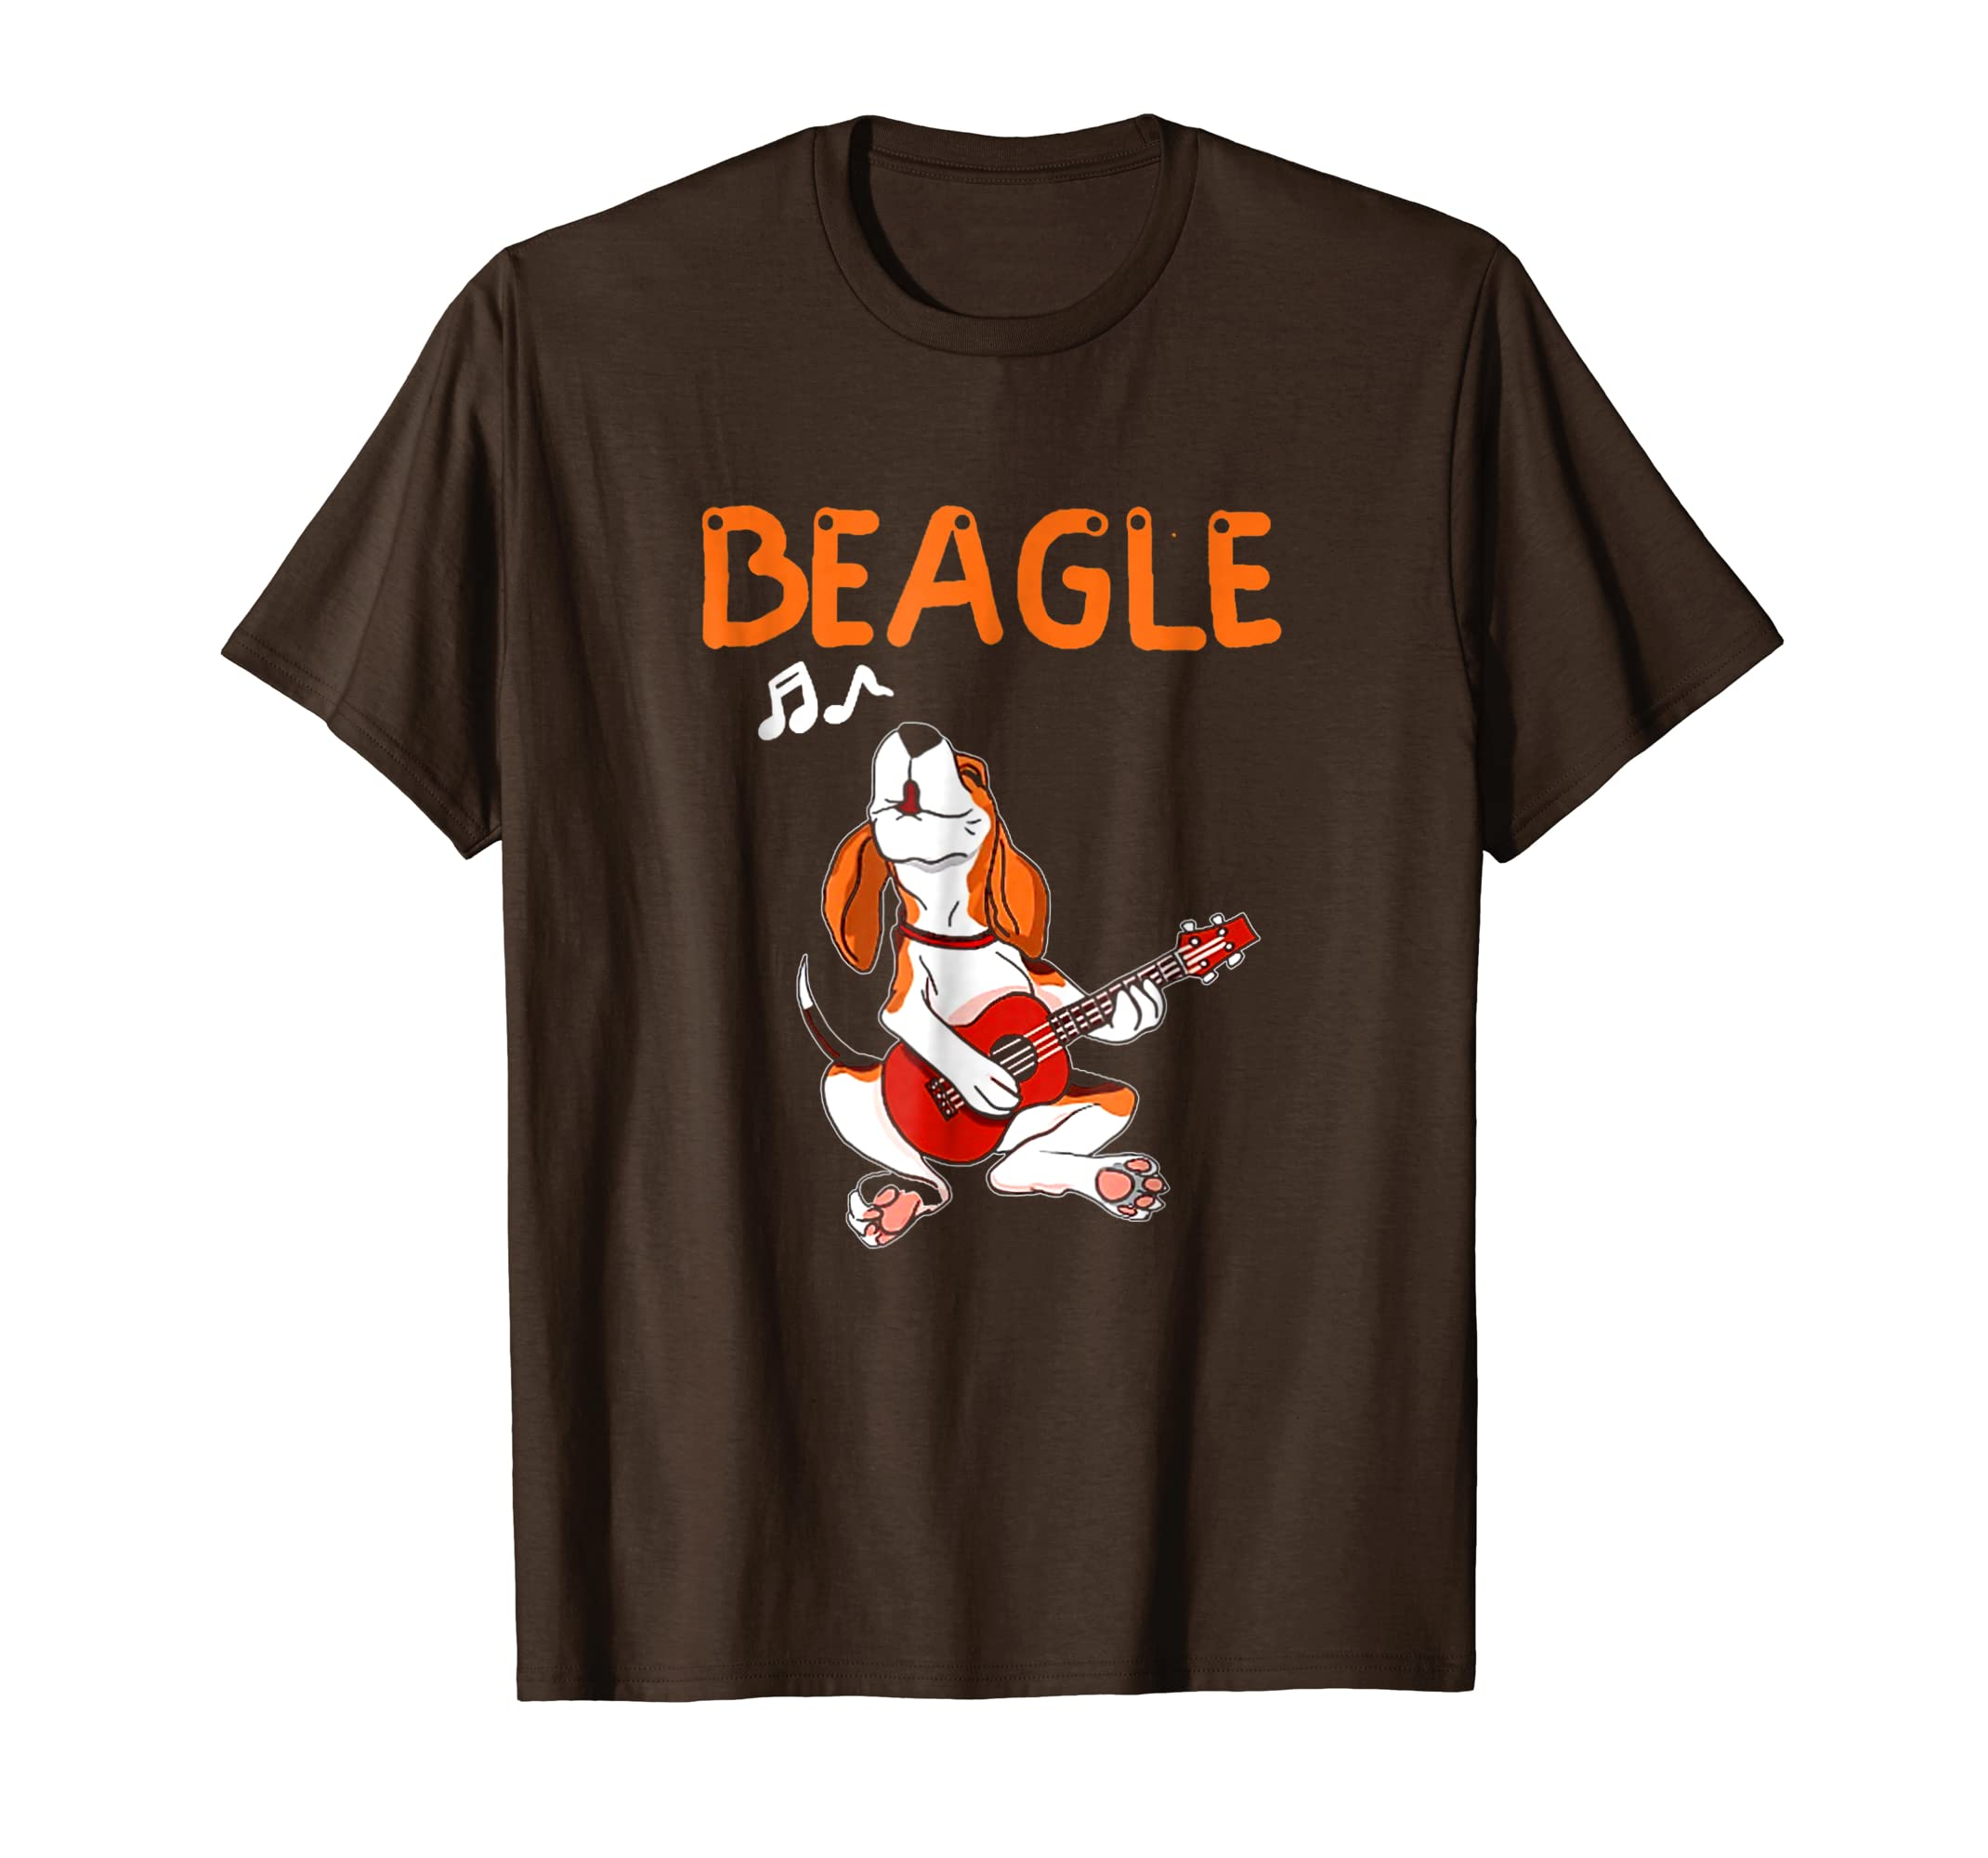 Beagle T Shirt Beagle Dog Music Shirt-Awarplus